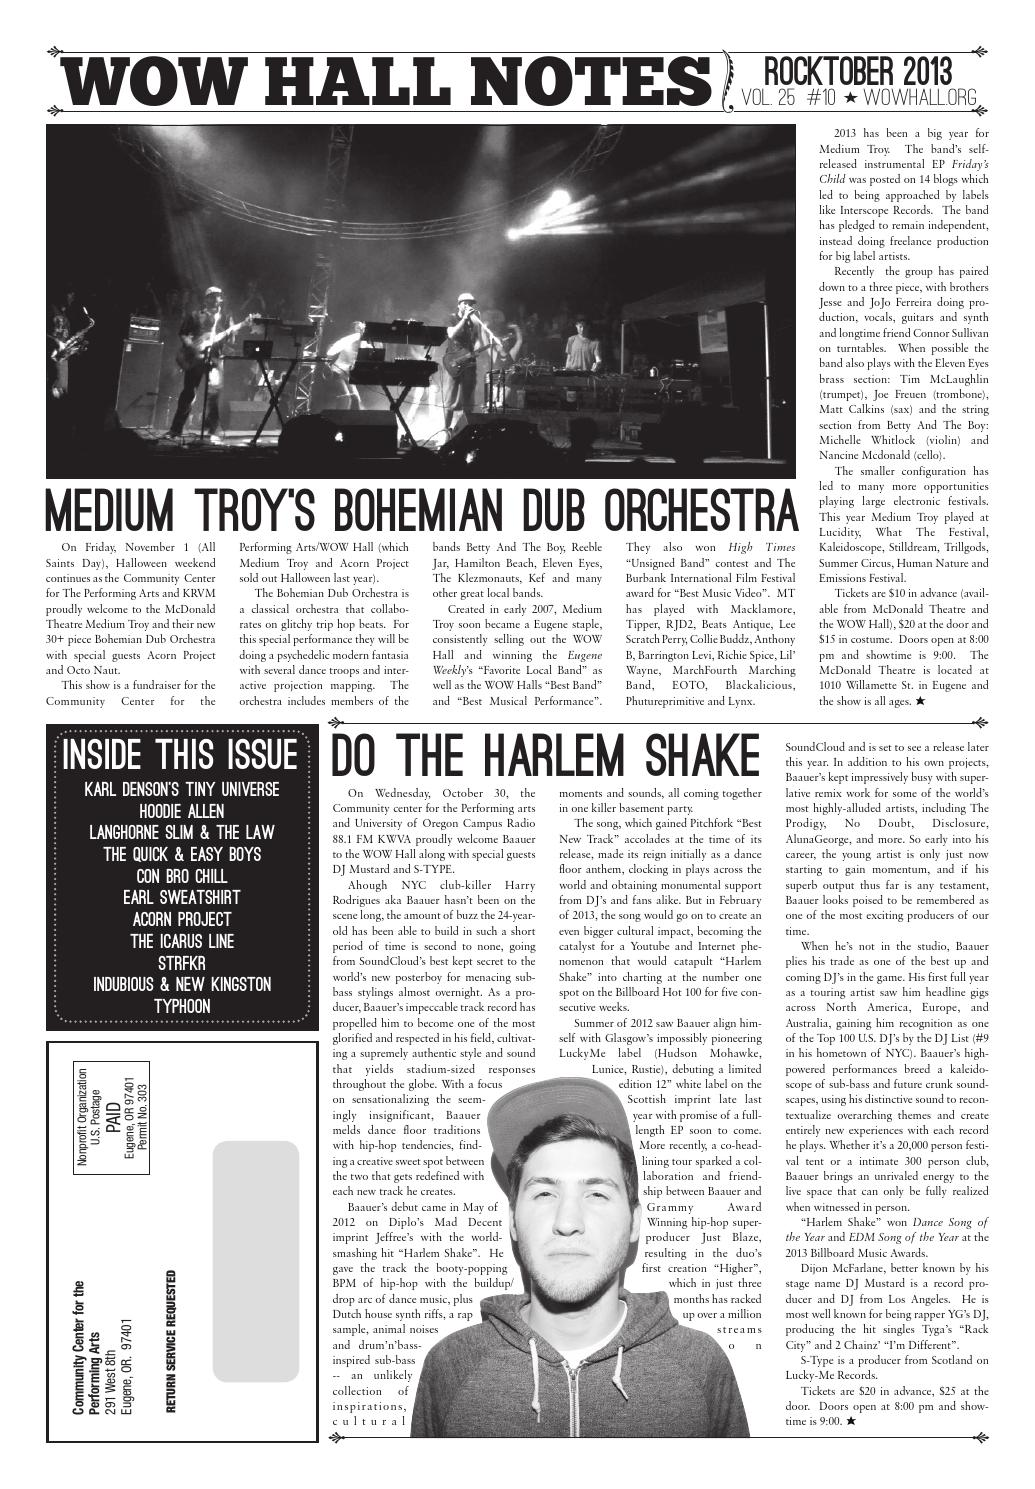 WOW Hall Notes - Rocktober 2013 by WOW Hall - issuu